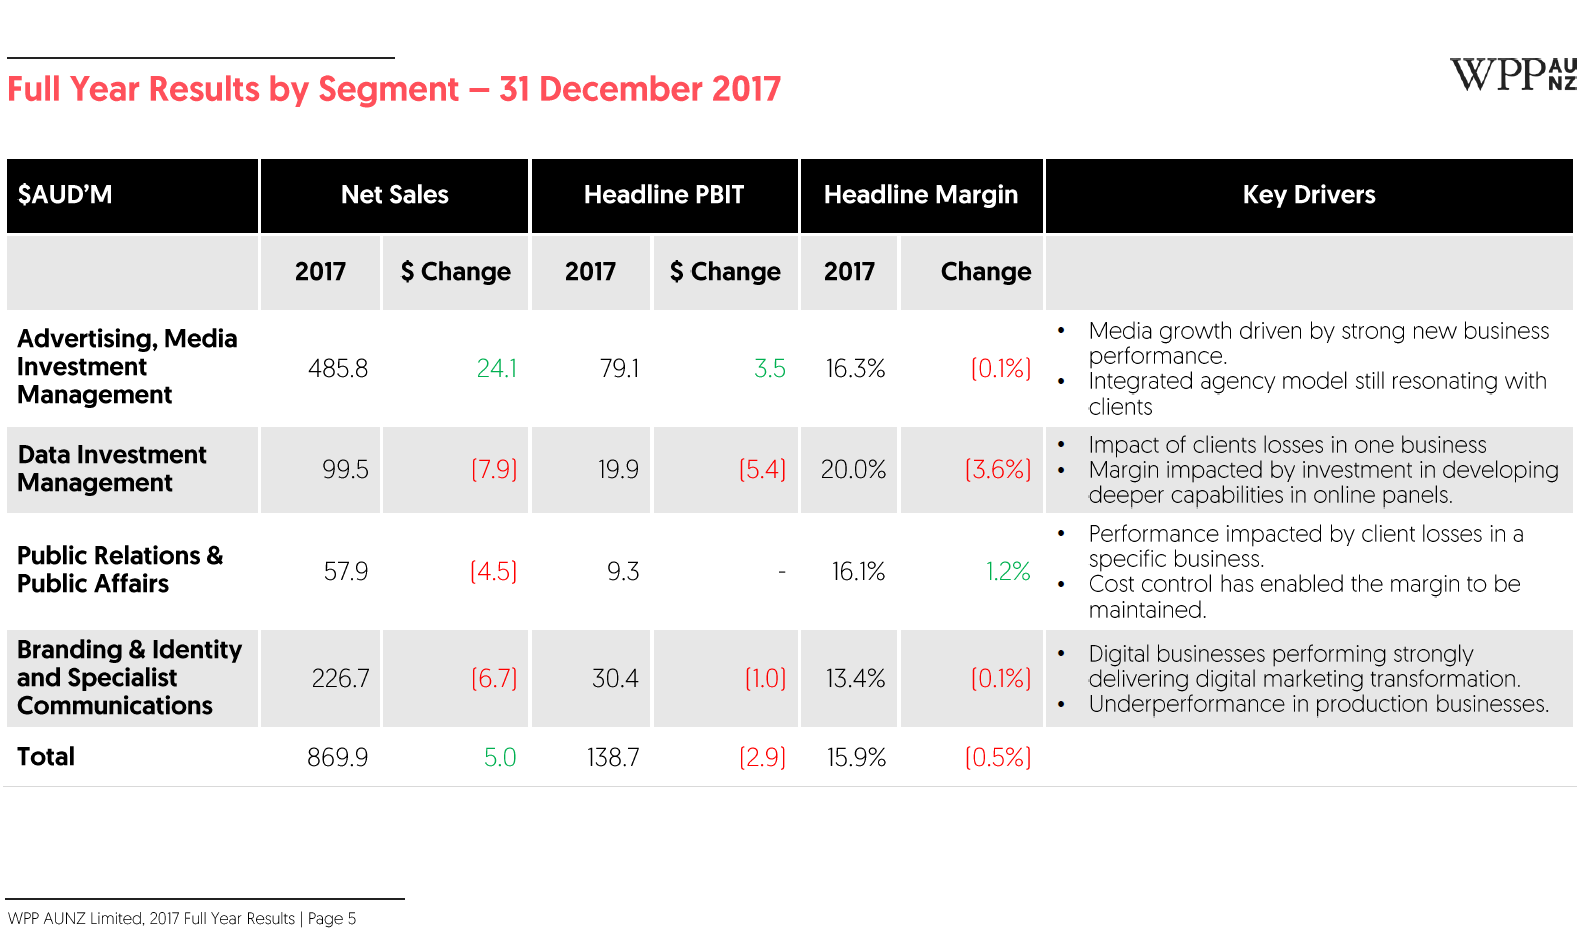 WPP AUNZ full-year results by segment (2017)